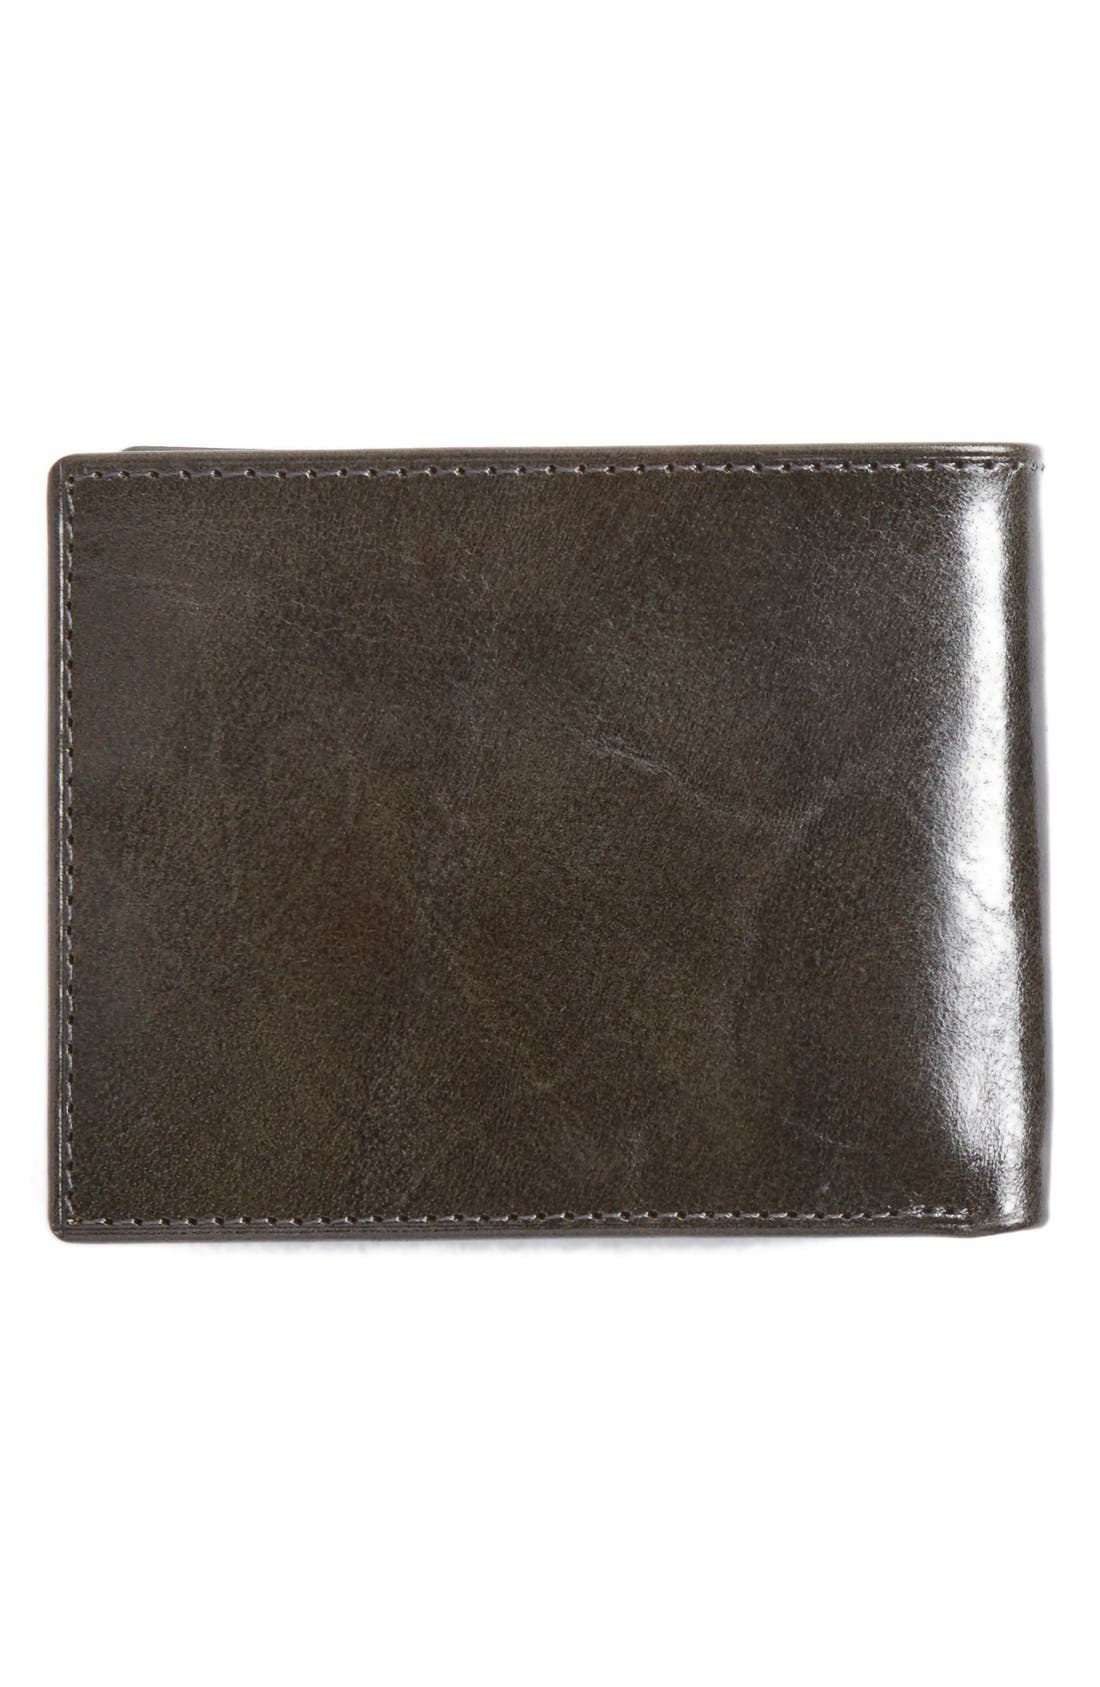 Flip Billfold Leather Wallet,                             Alternate thumbnail 4, color,                             CHARCOAL